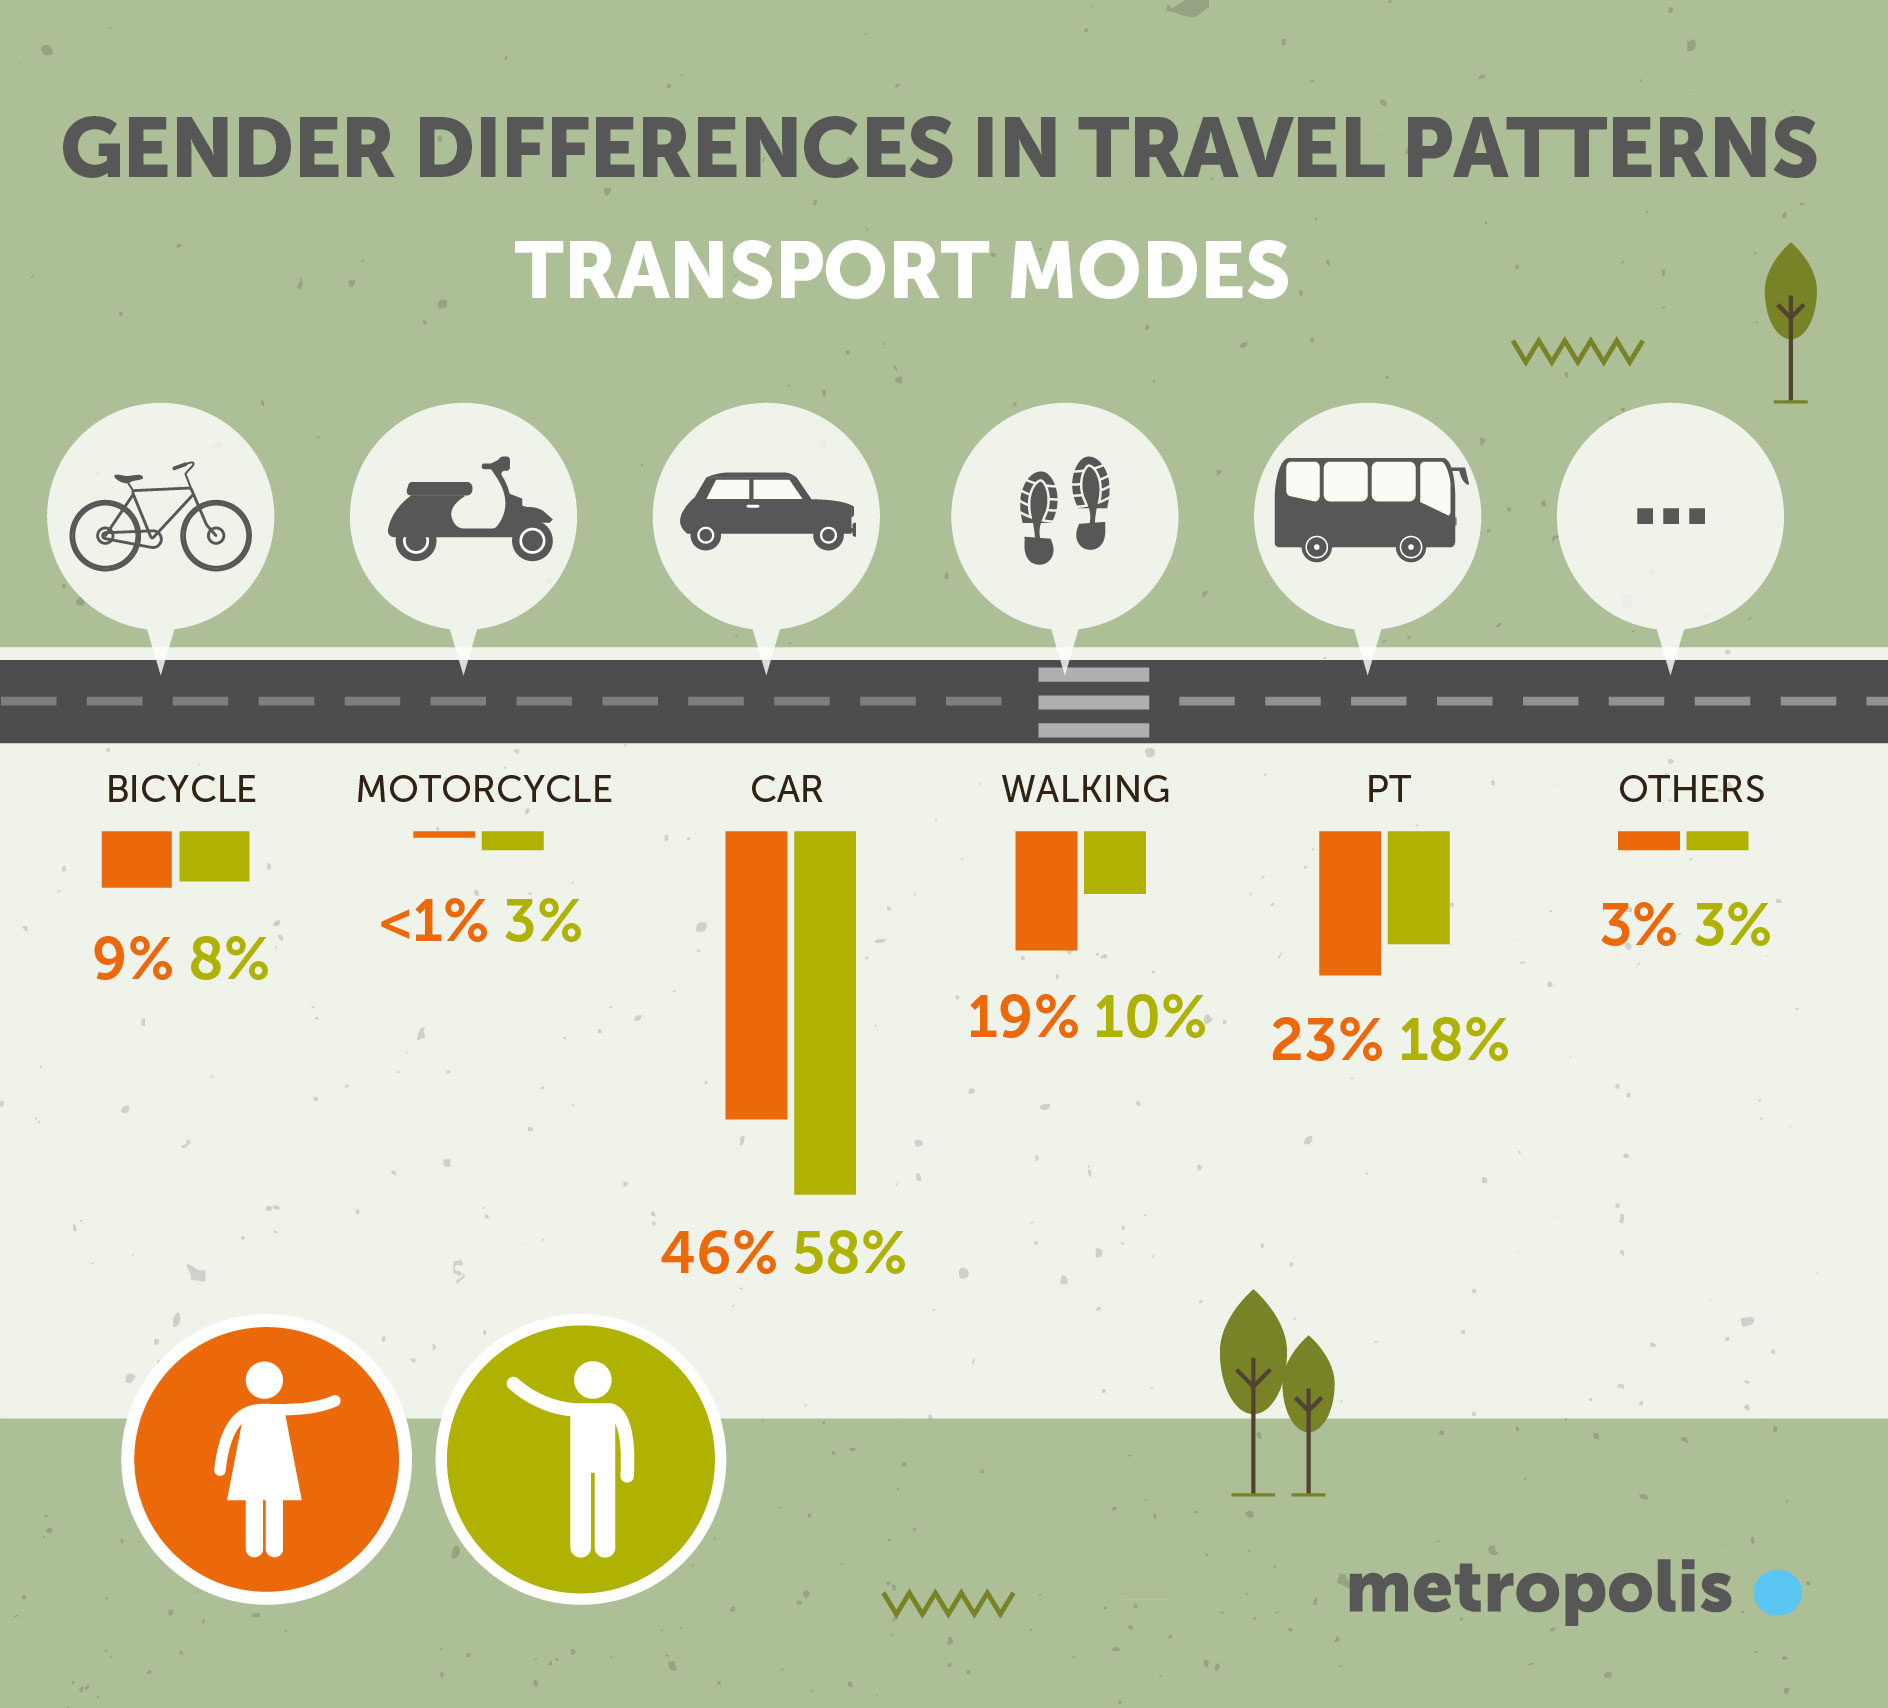 Gender differences in travel patterns